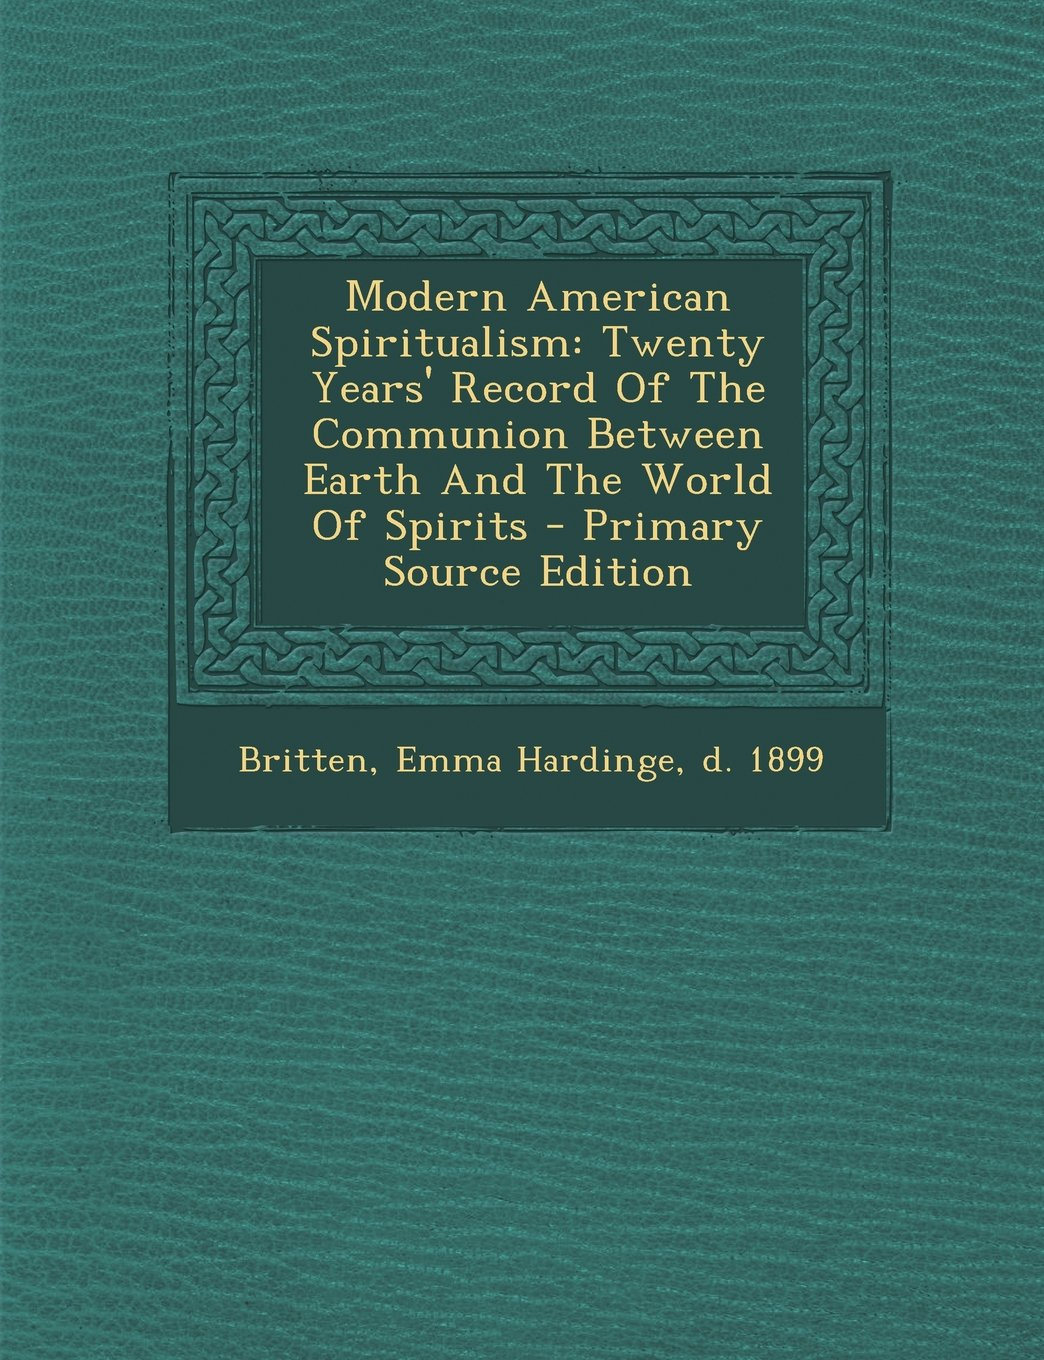 Read Online Modern American Spiritualism: Twenty Years' Record of the Communion Between Earth and the World of Spirits - Primary Source Edition ebook